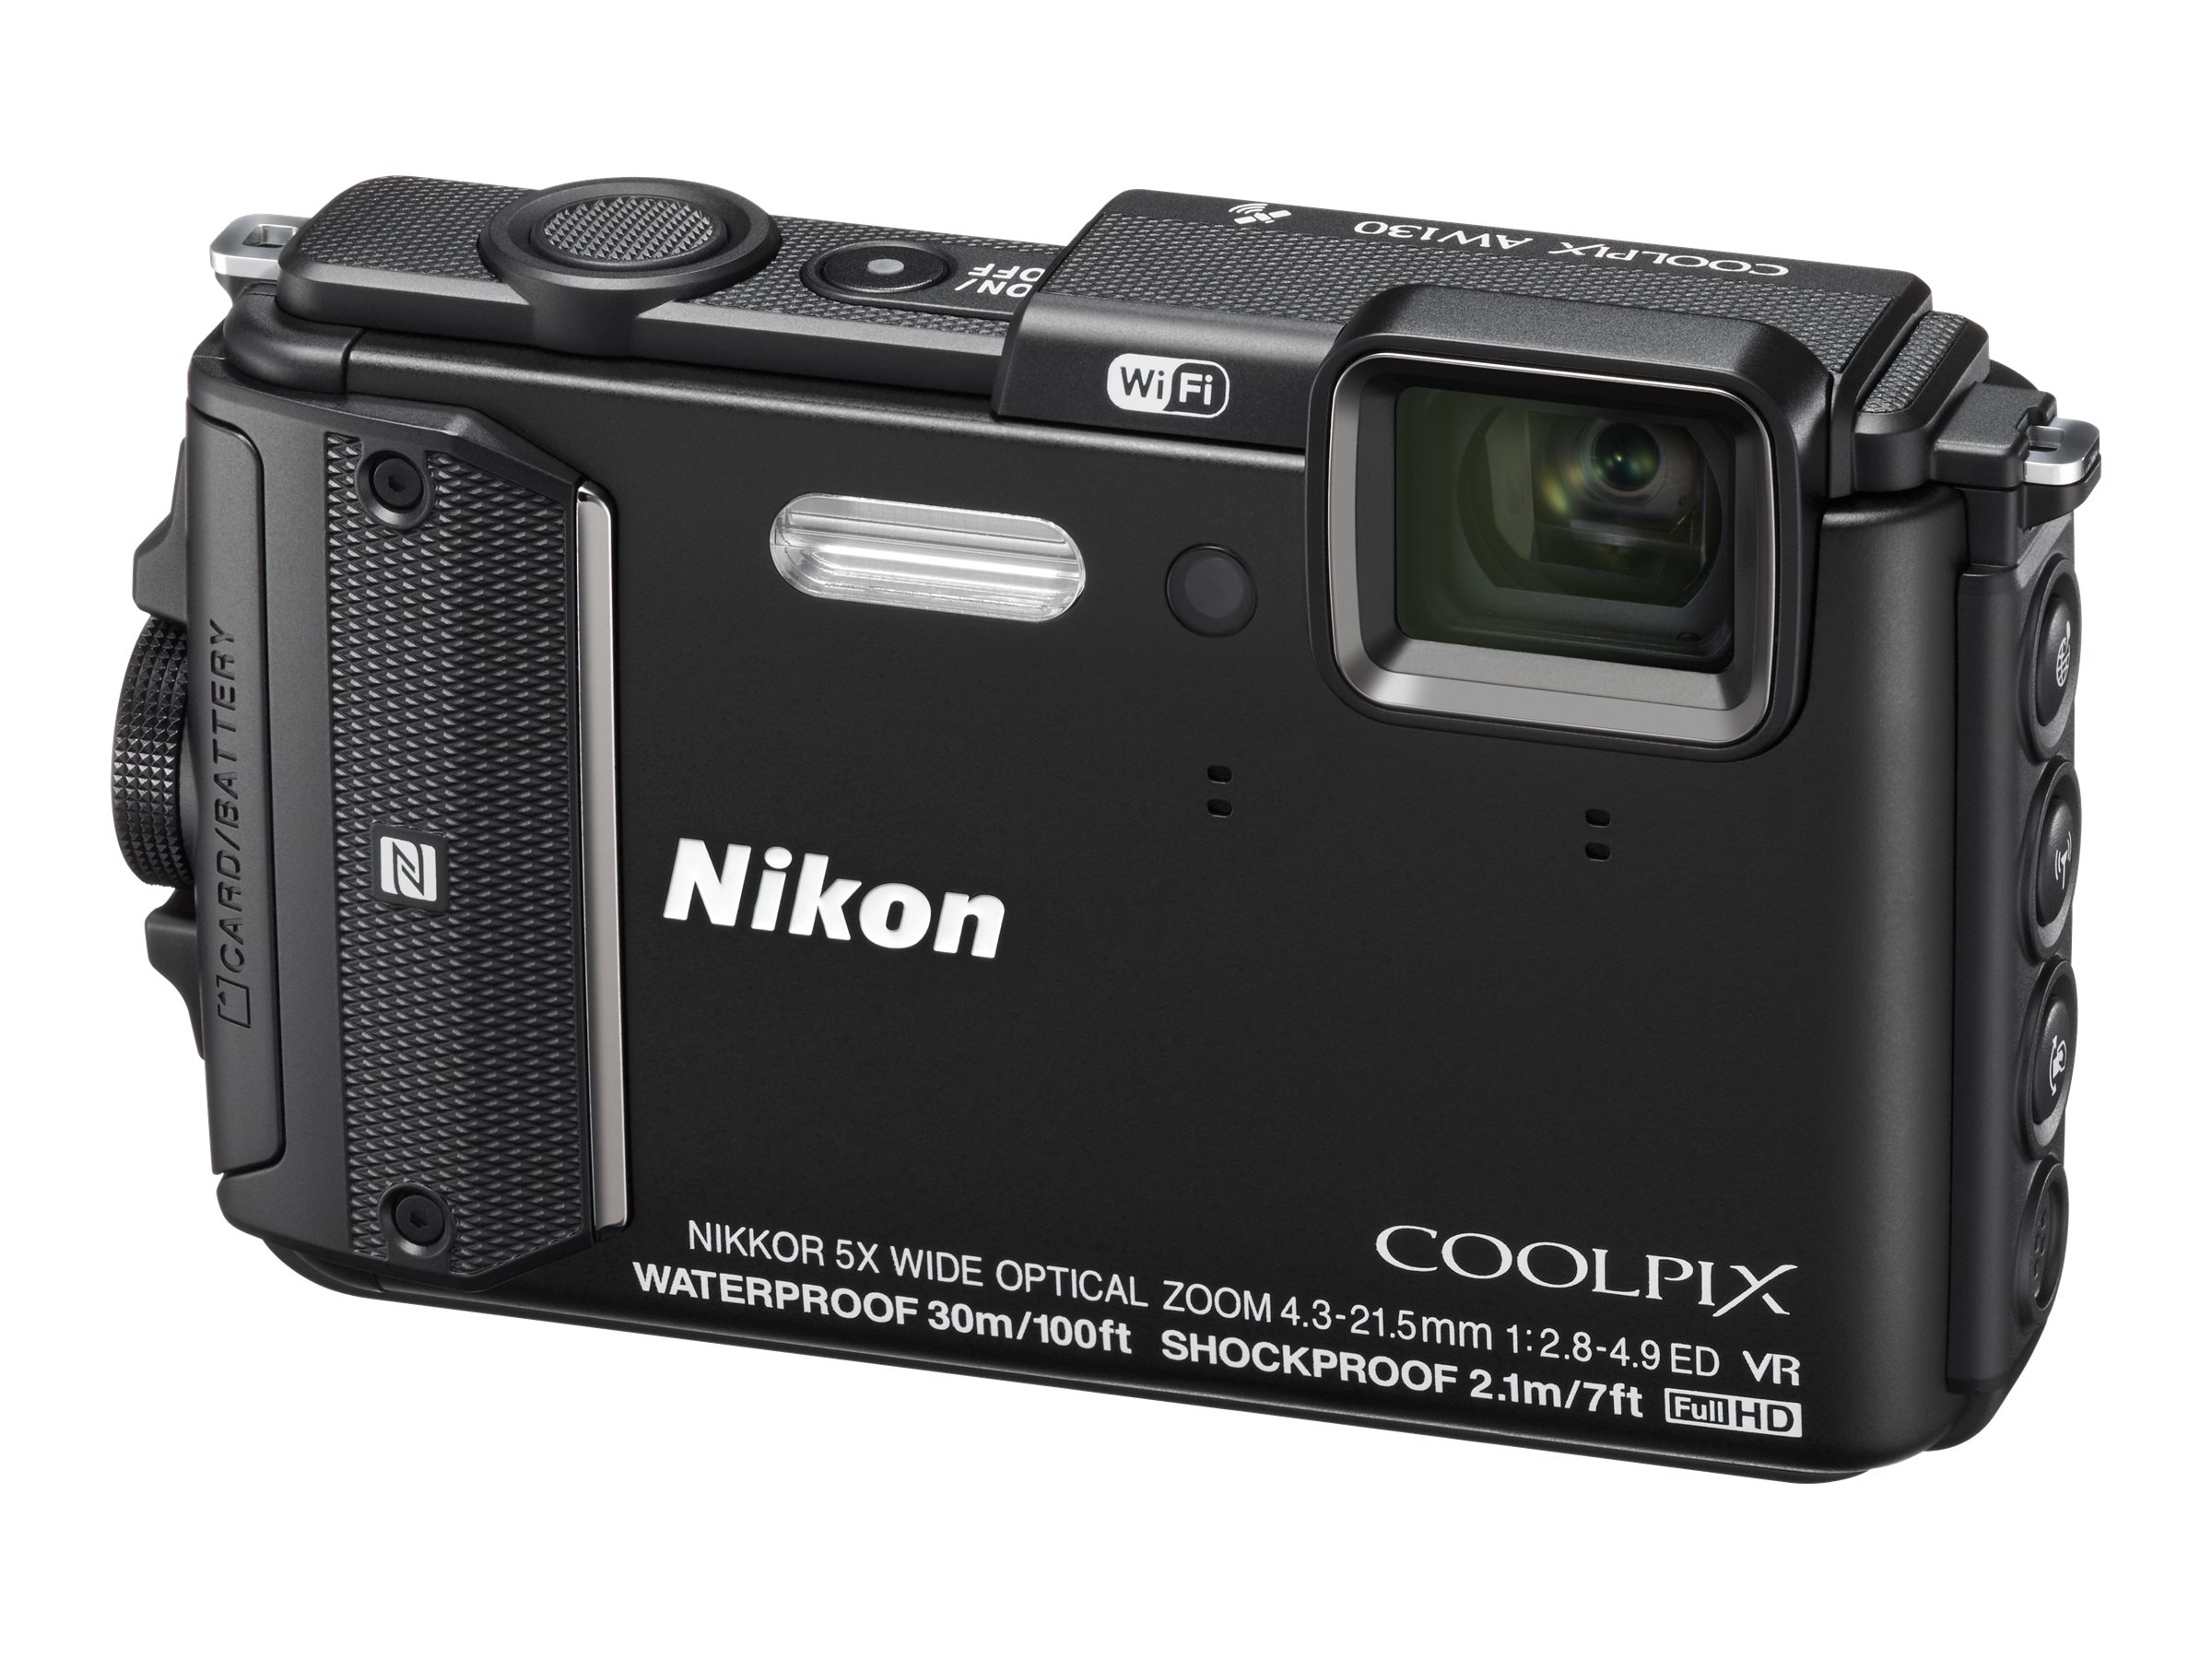 Nikon COOLPIX AW130 Waterproof Digital Camera, 16MP, 5x Zoom, Black, 26491, 19249105, Cameras - Digital - Point & Shoot